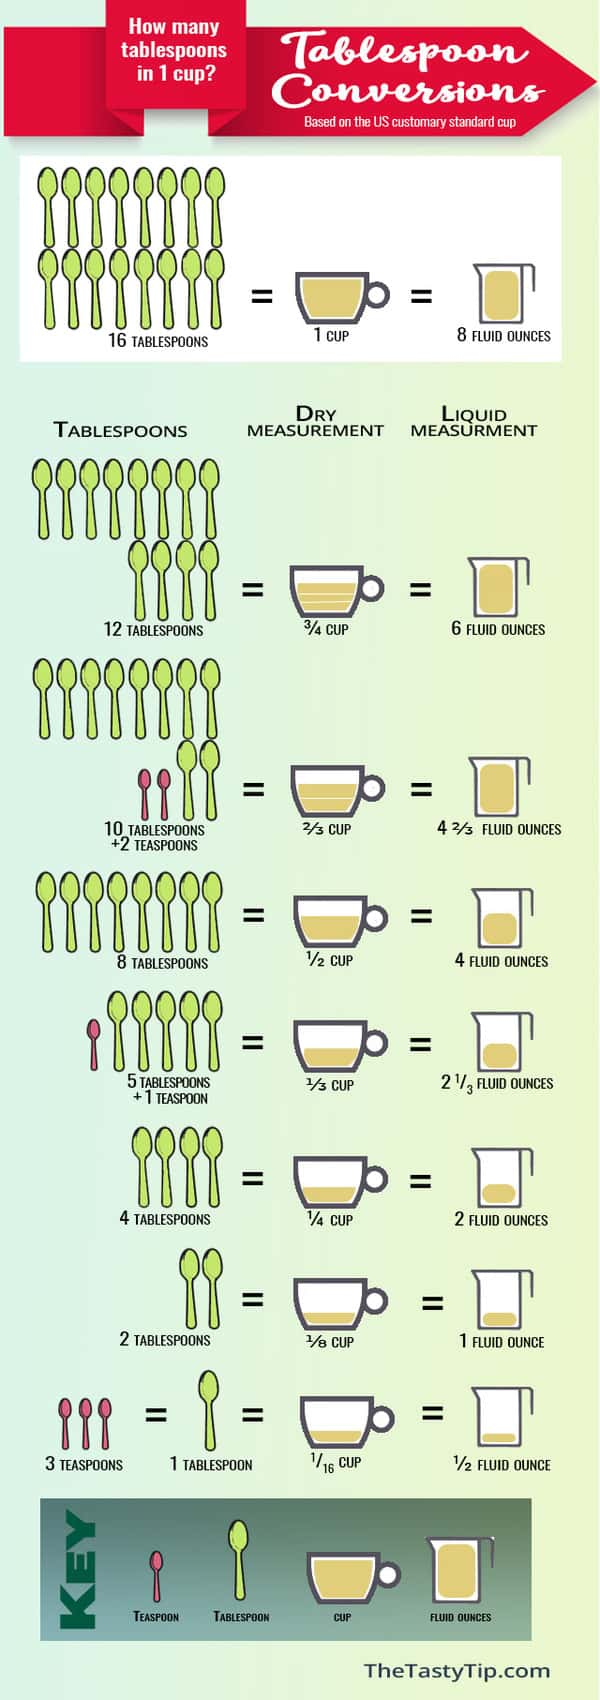 tablespoon conversion infographic